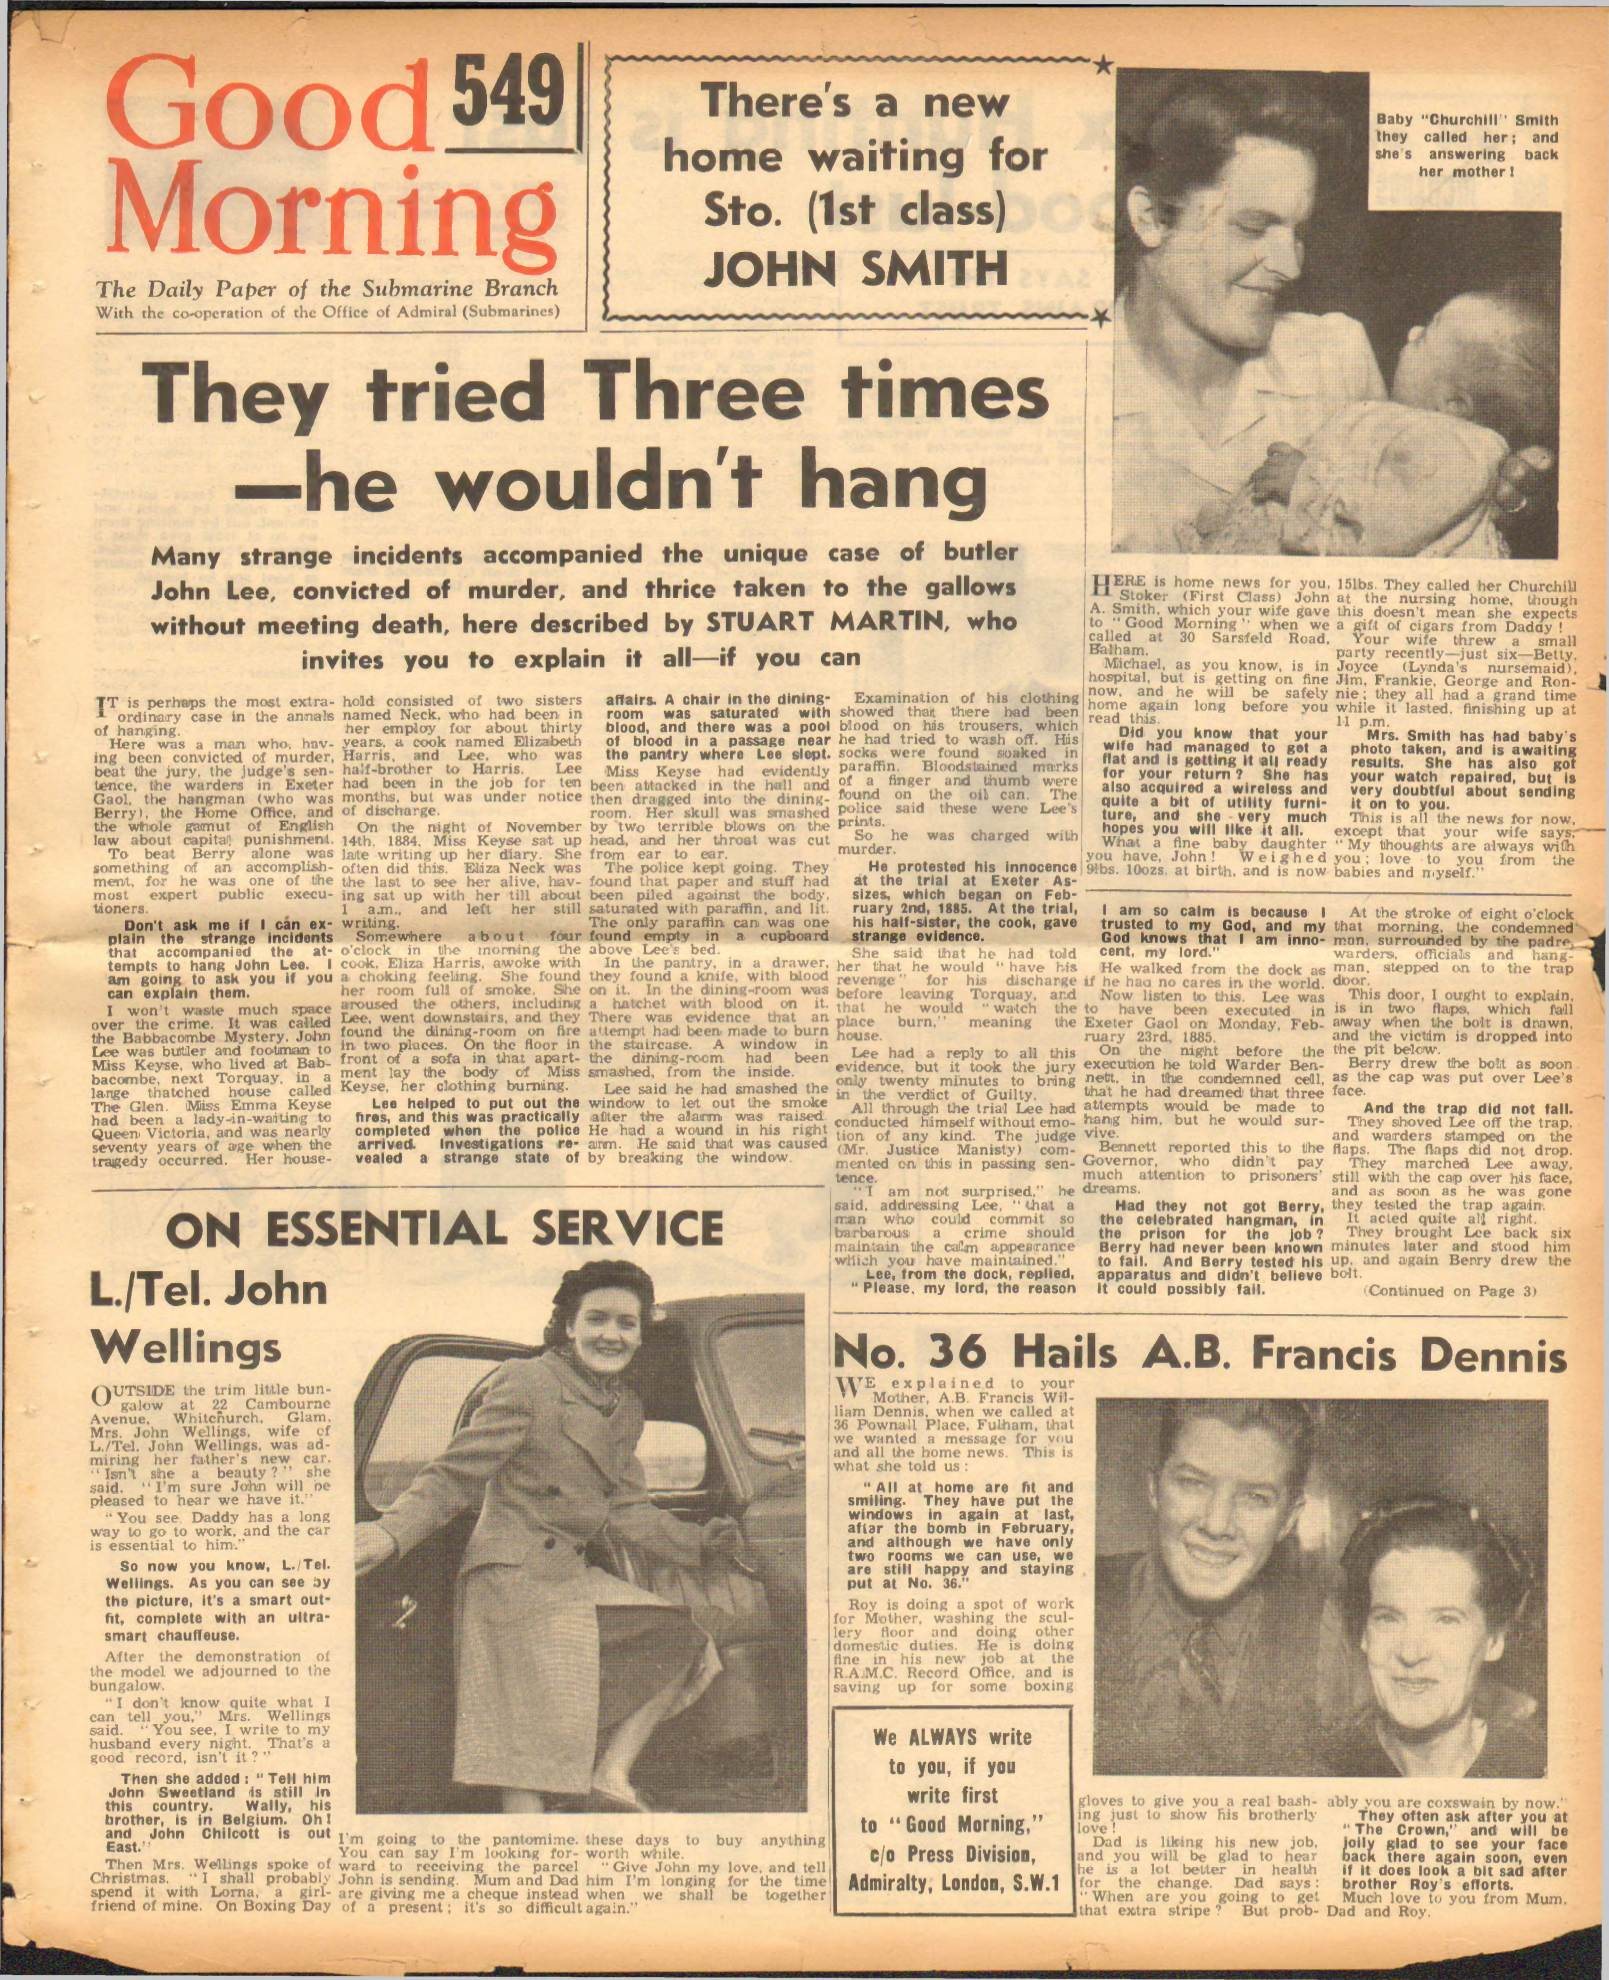 View individual pages of 'Good Morning, No 549, The Daily Paper of the Submarine Branch'